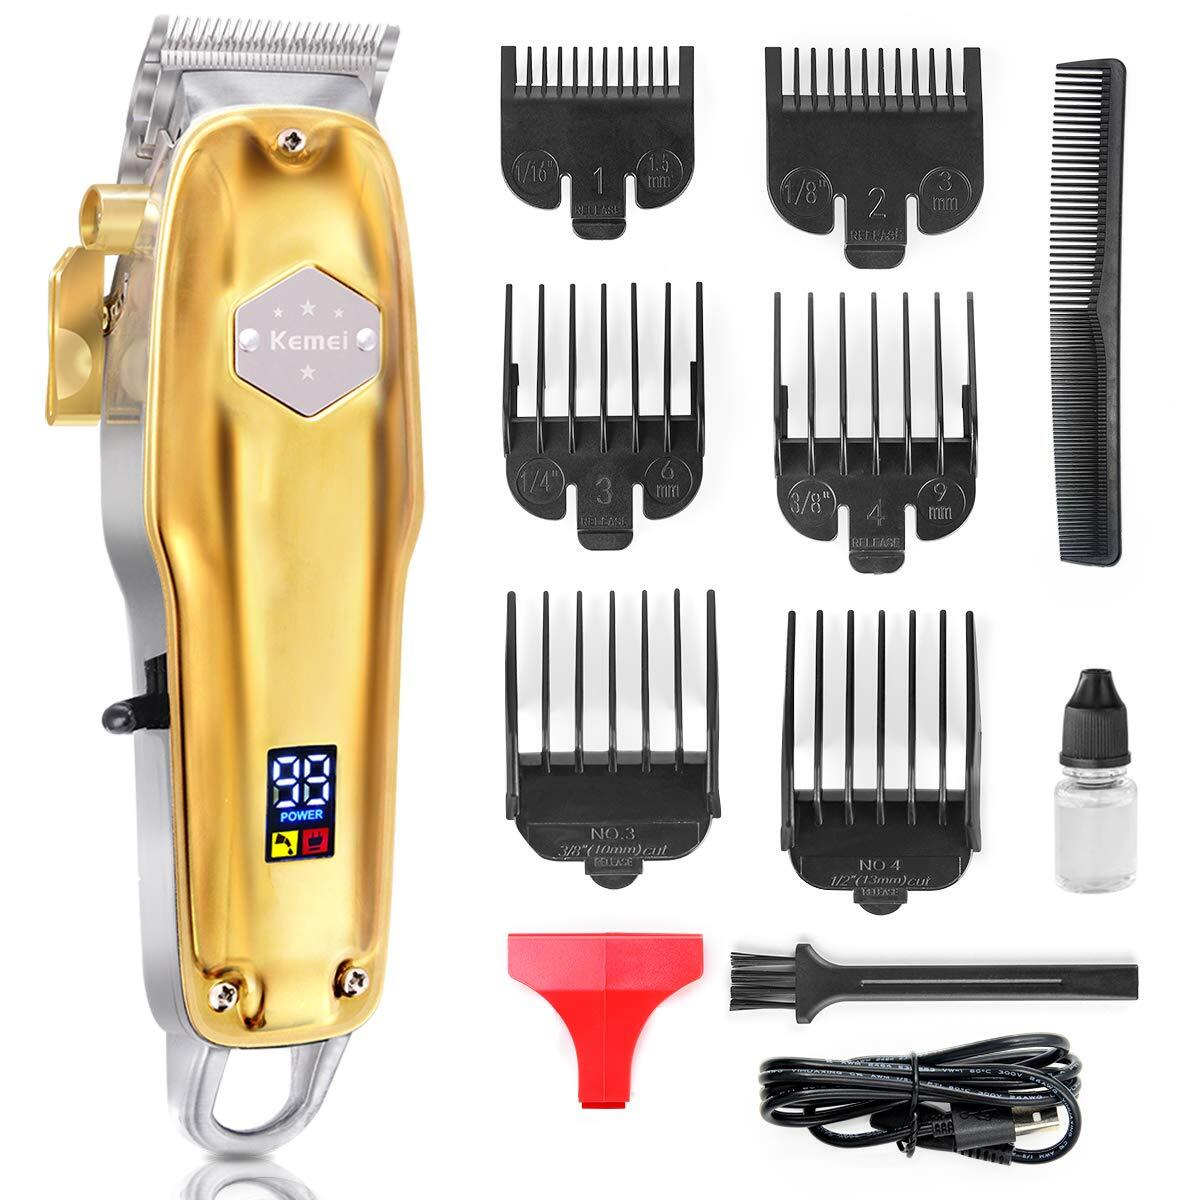 Professional Hair Clippers Rechargeable Cordless Barber Hair clippers Hair Cutting Grooming kit With Precision Carbon Steel Blade Fresh Fade Haircuts 6 Combs Clippers LED Display Haircut Kit